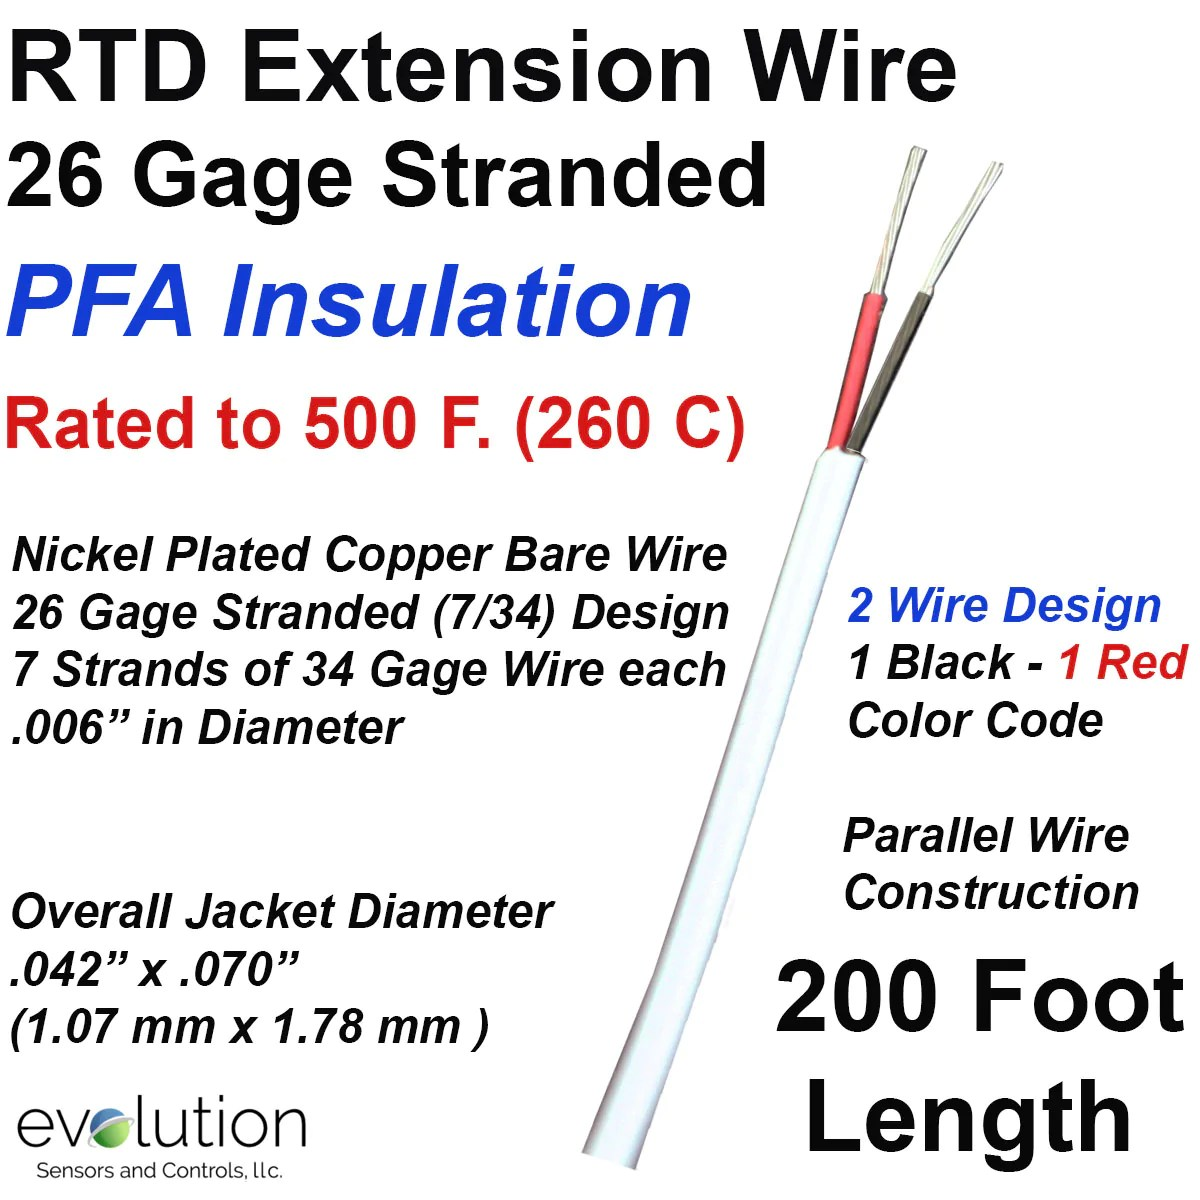 small resolution of rtd extension wire 200 foot length 26 gage stranded 2 wire design rtd wiring color code